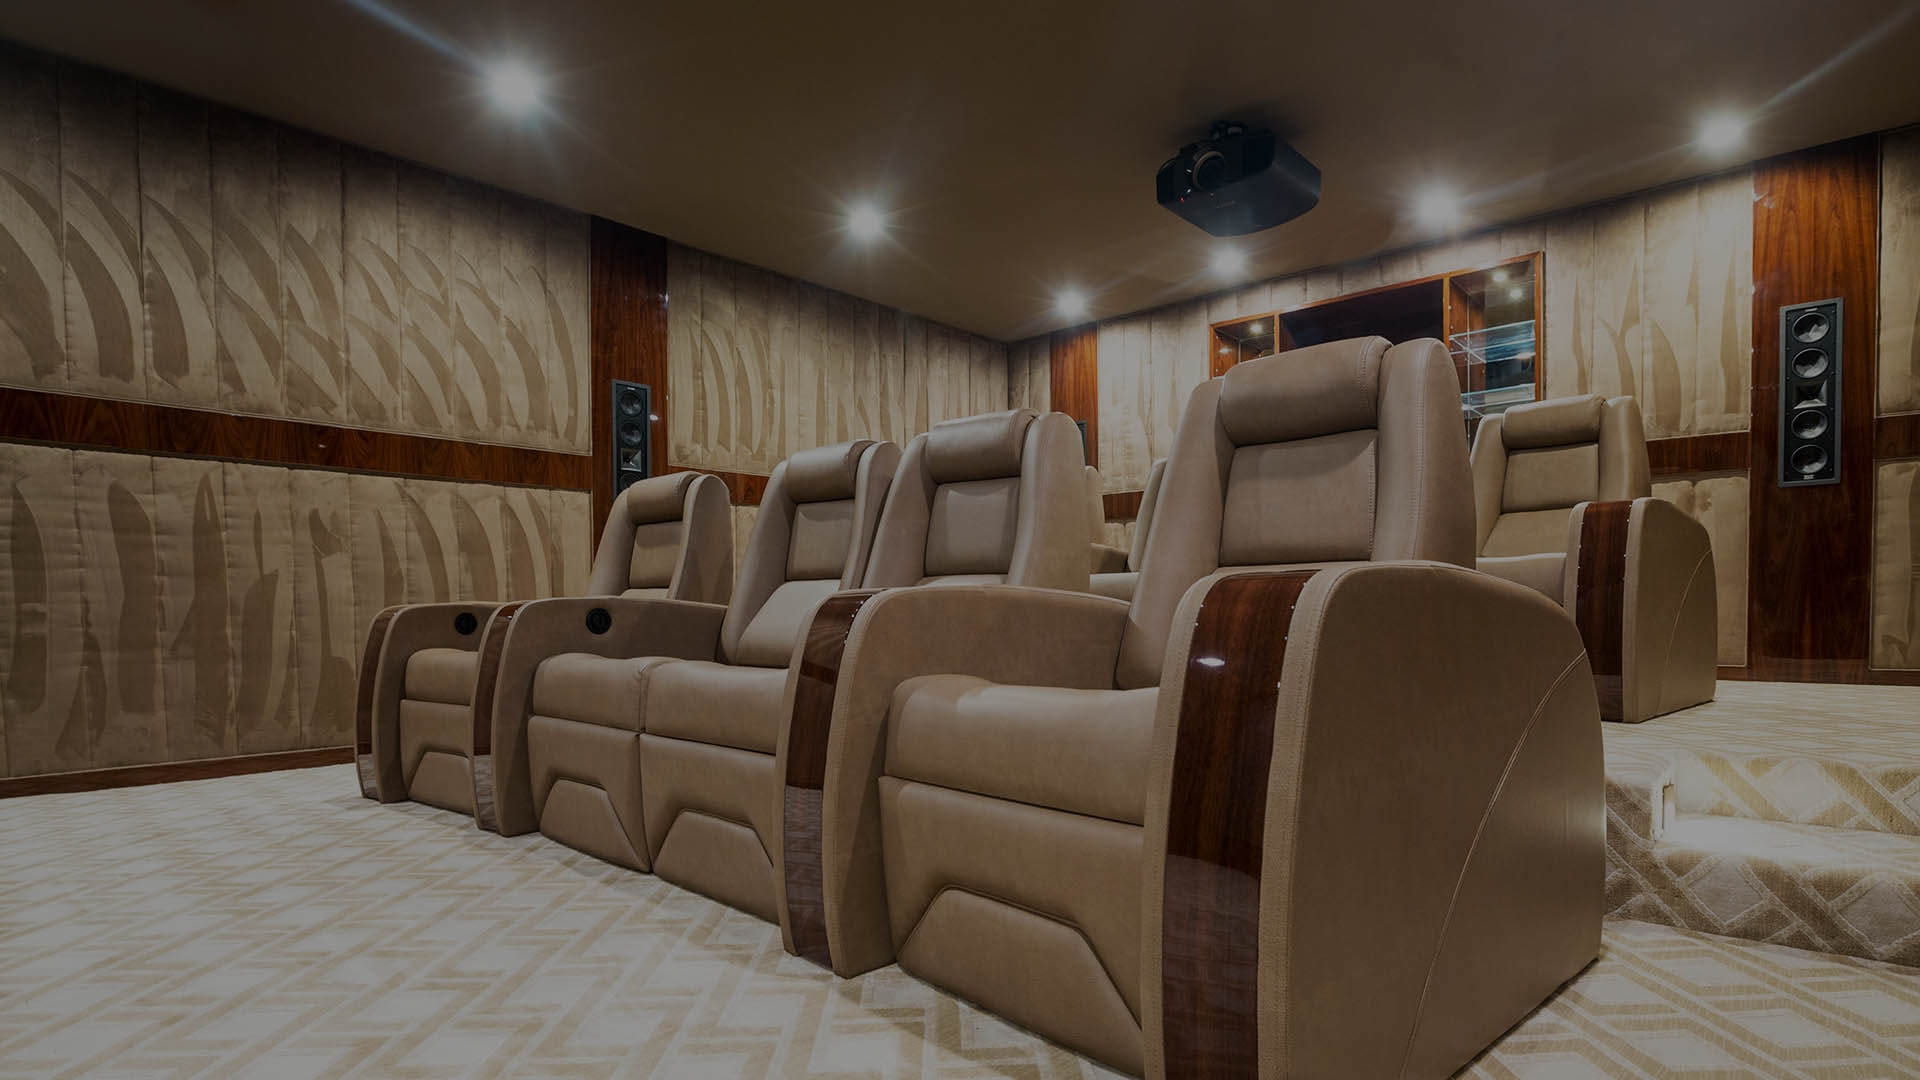 Ideal Home Theaters Design And Installation Company Of New Jersey